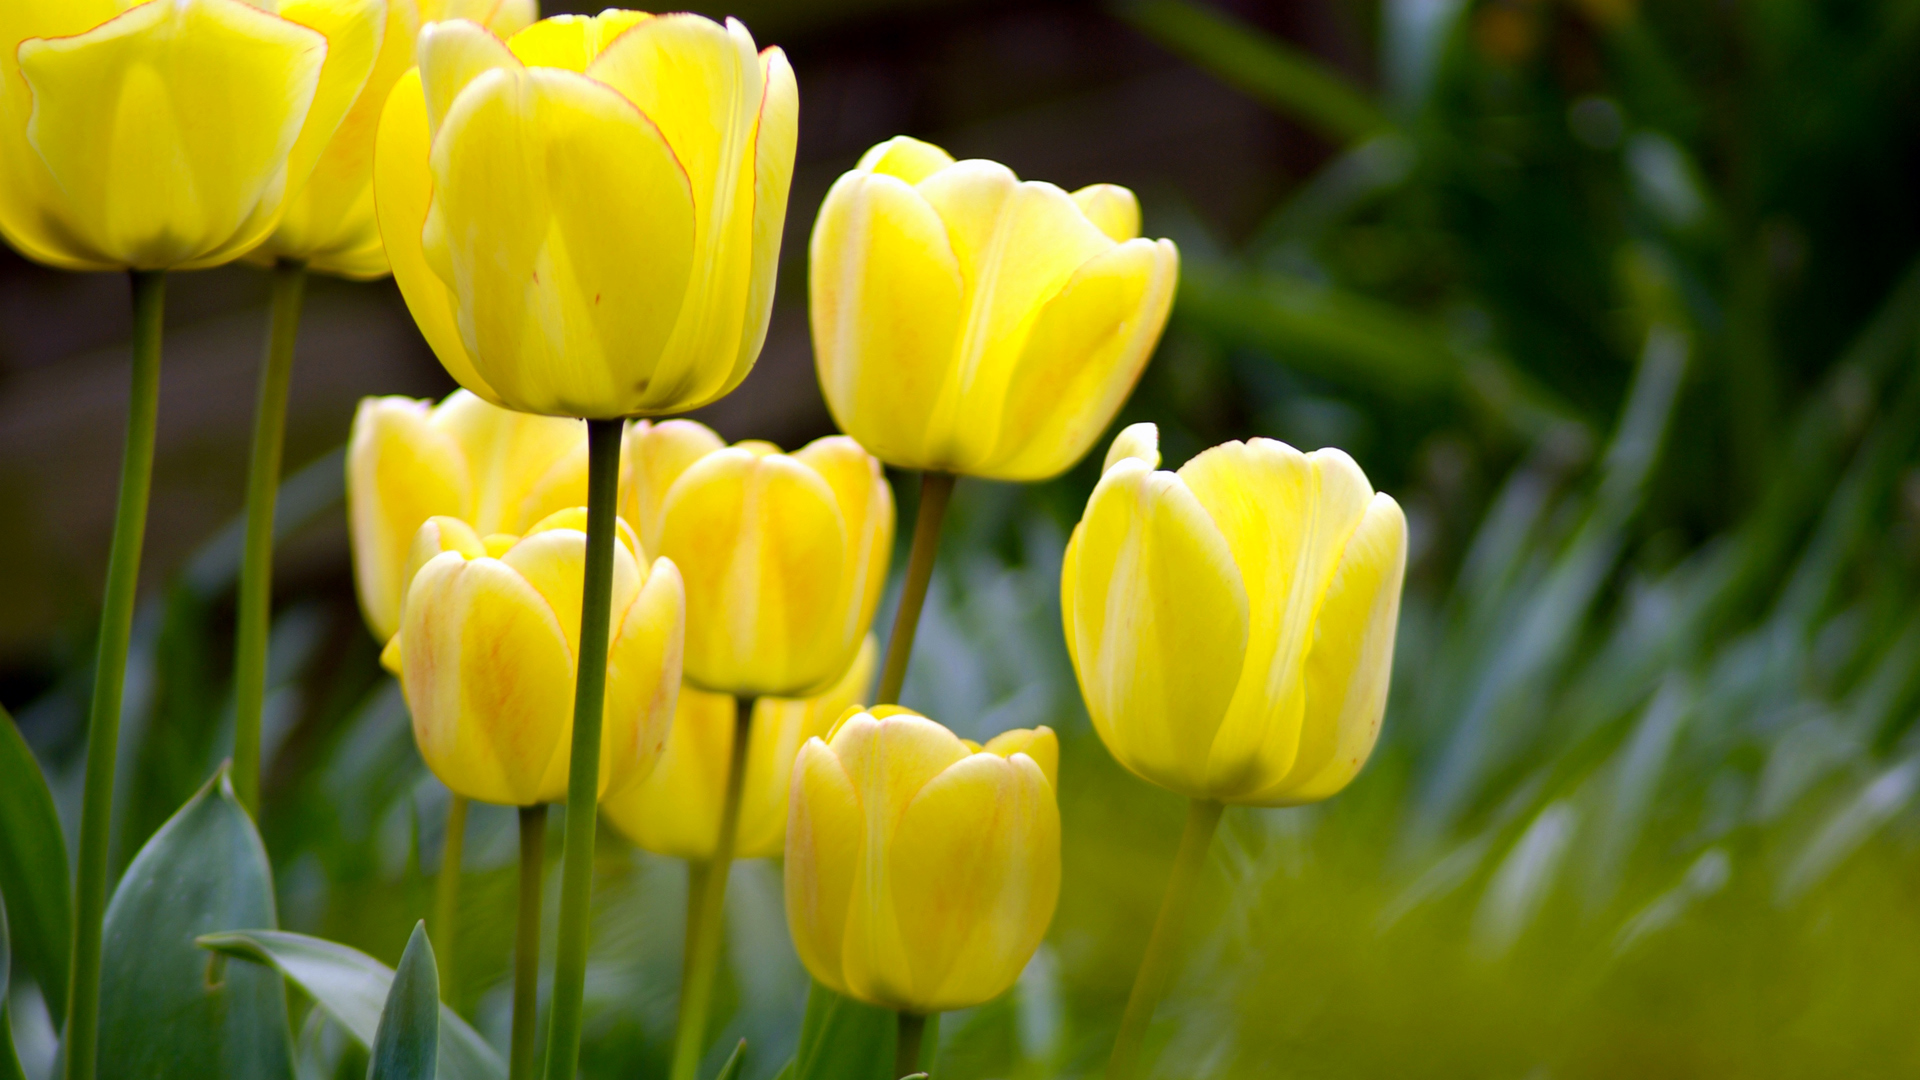 Spring Yellow Flowers - Wallpaper, High Definition, High ...